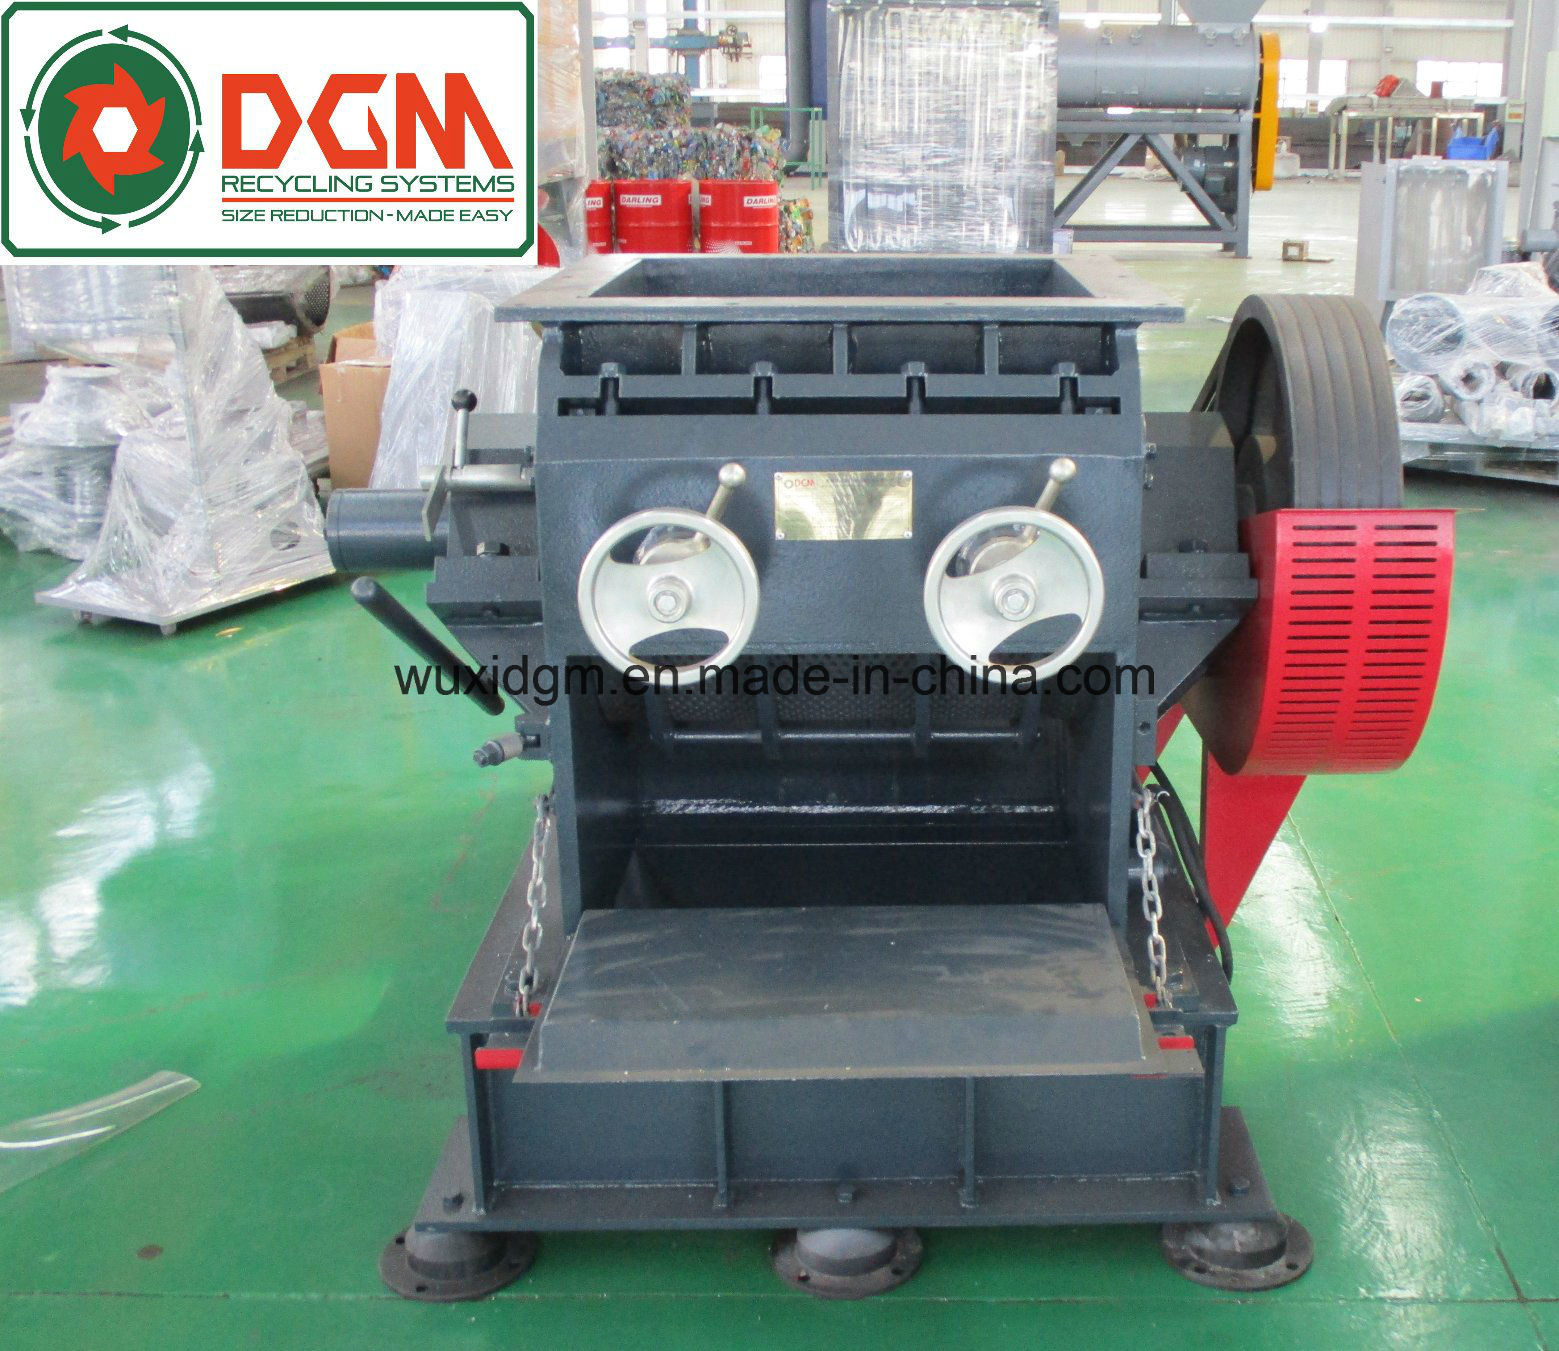 DGH350500 Heavy Duty Granulators